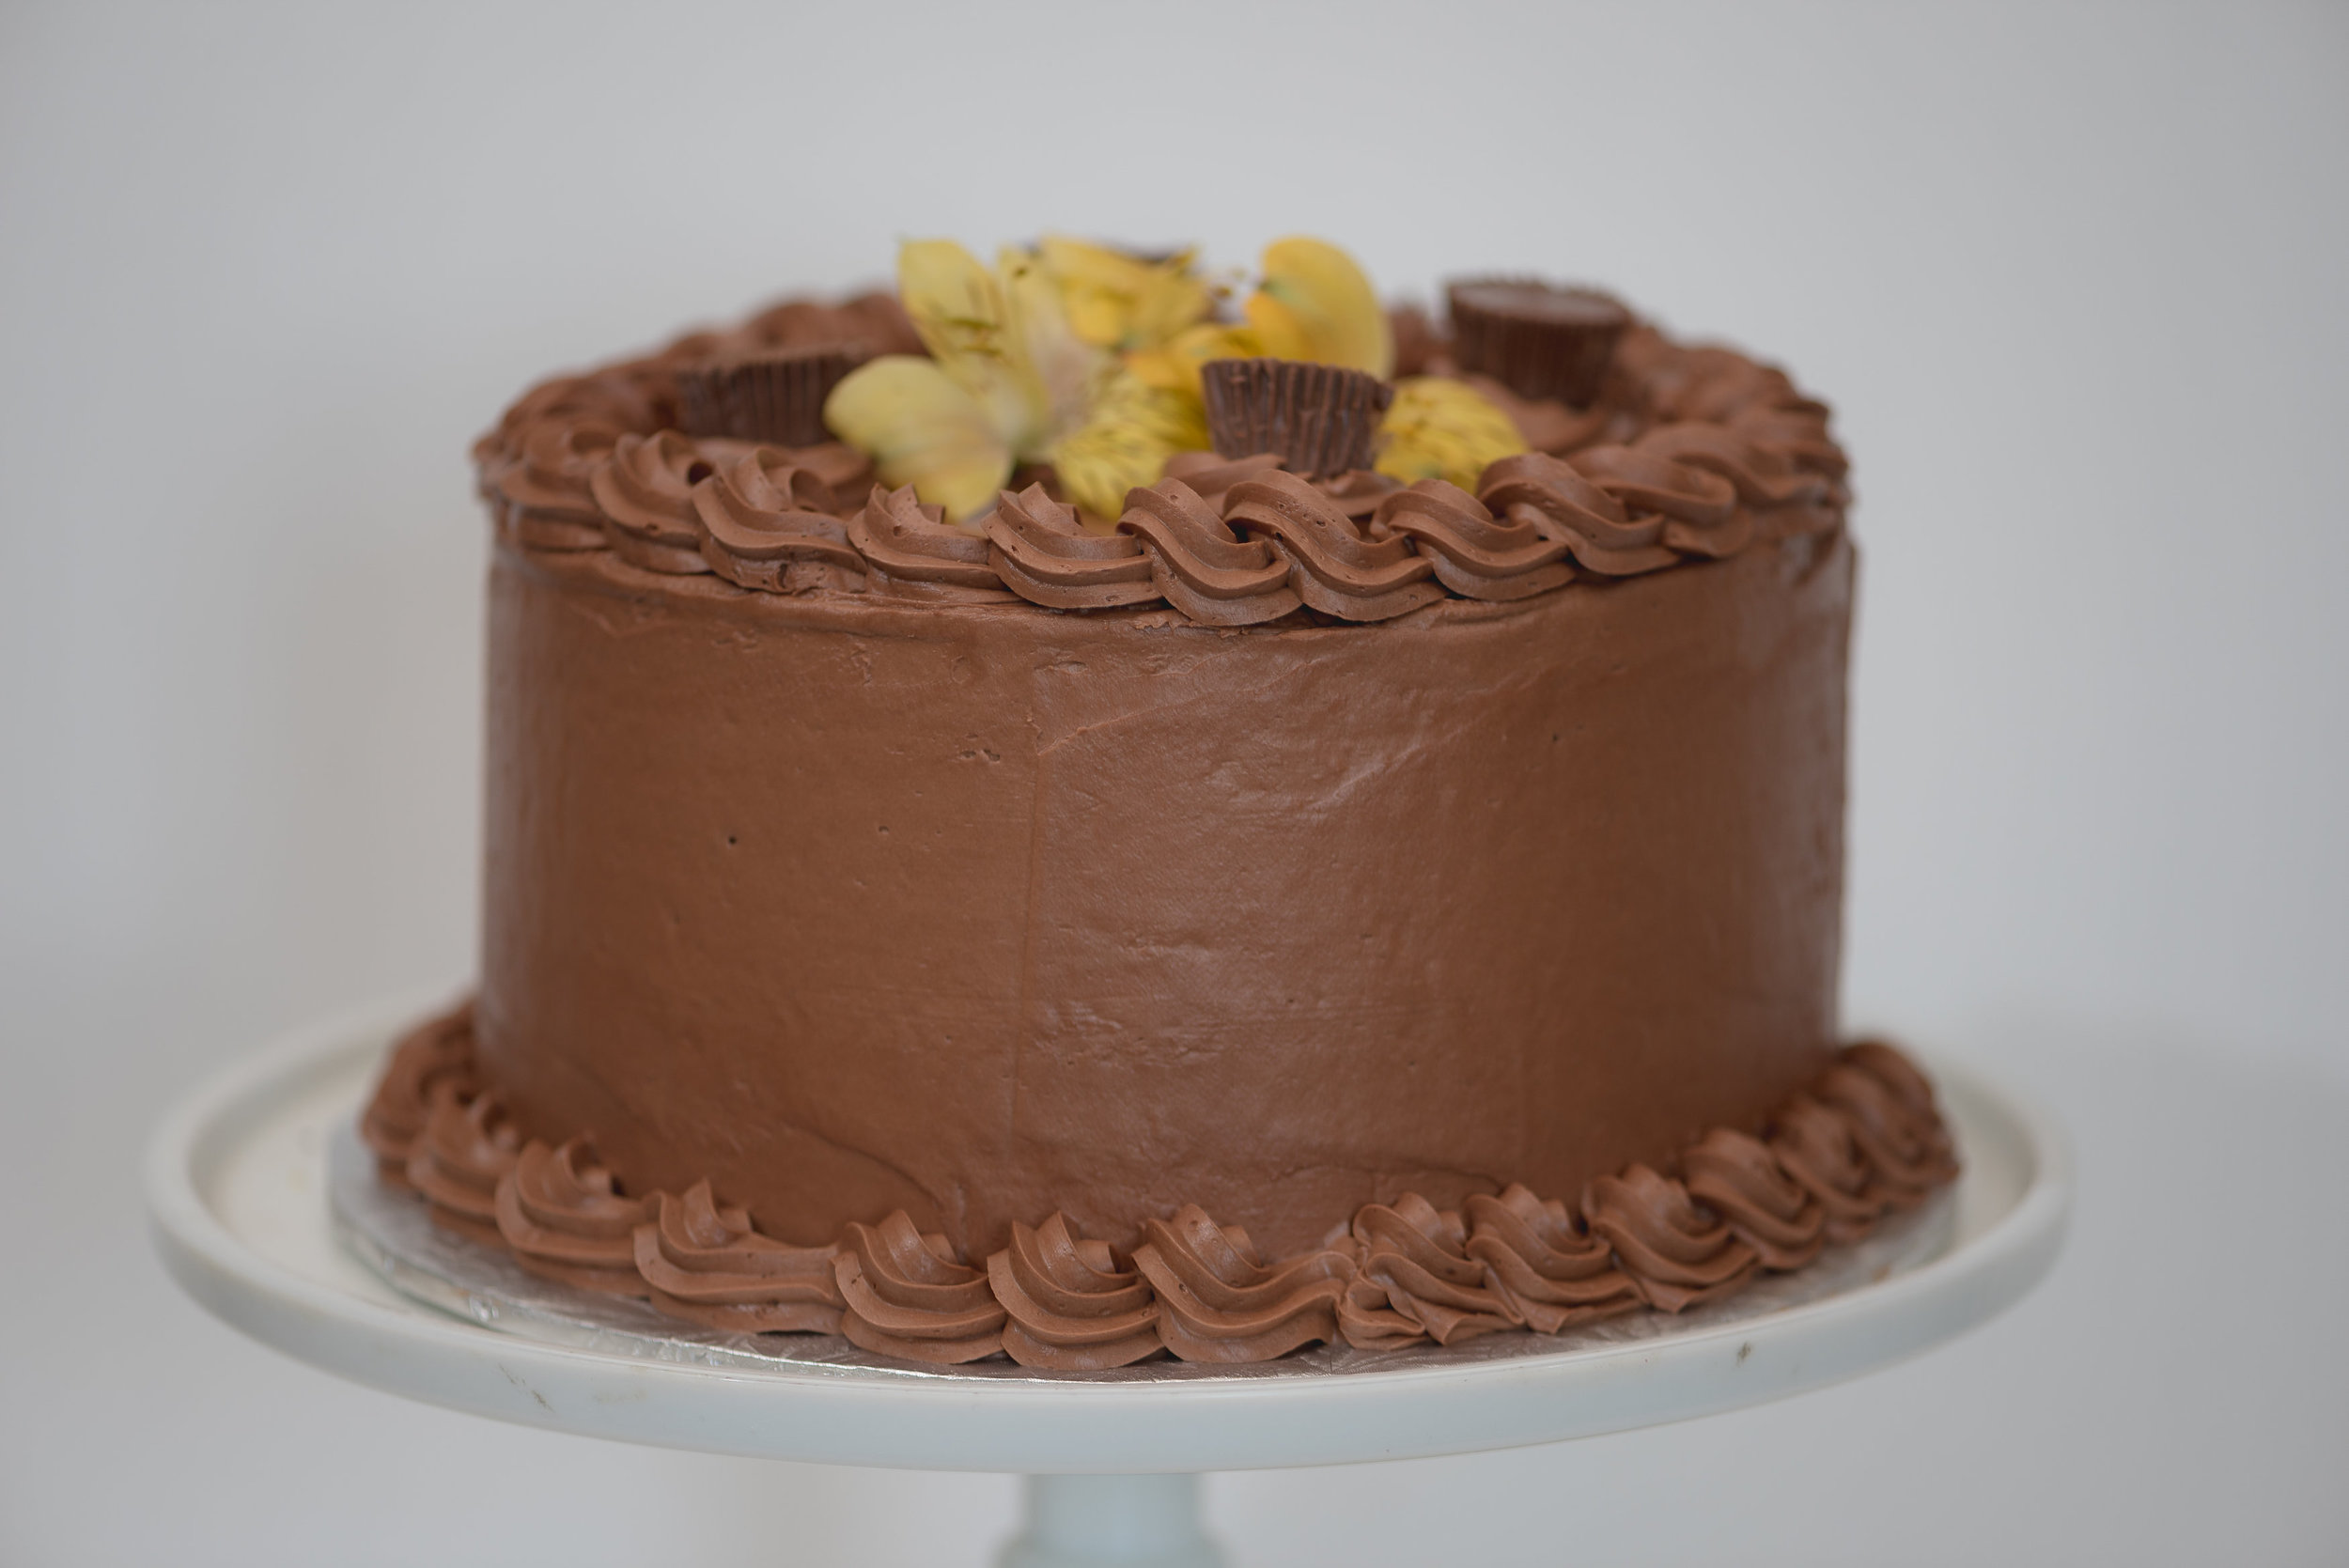 Double chocolate peanut butter cup cake.fresh flowers not included